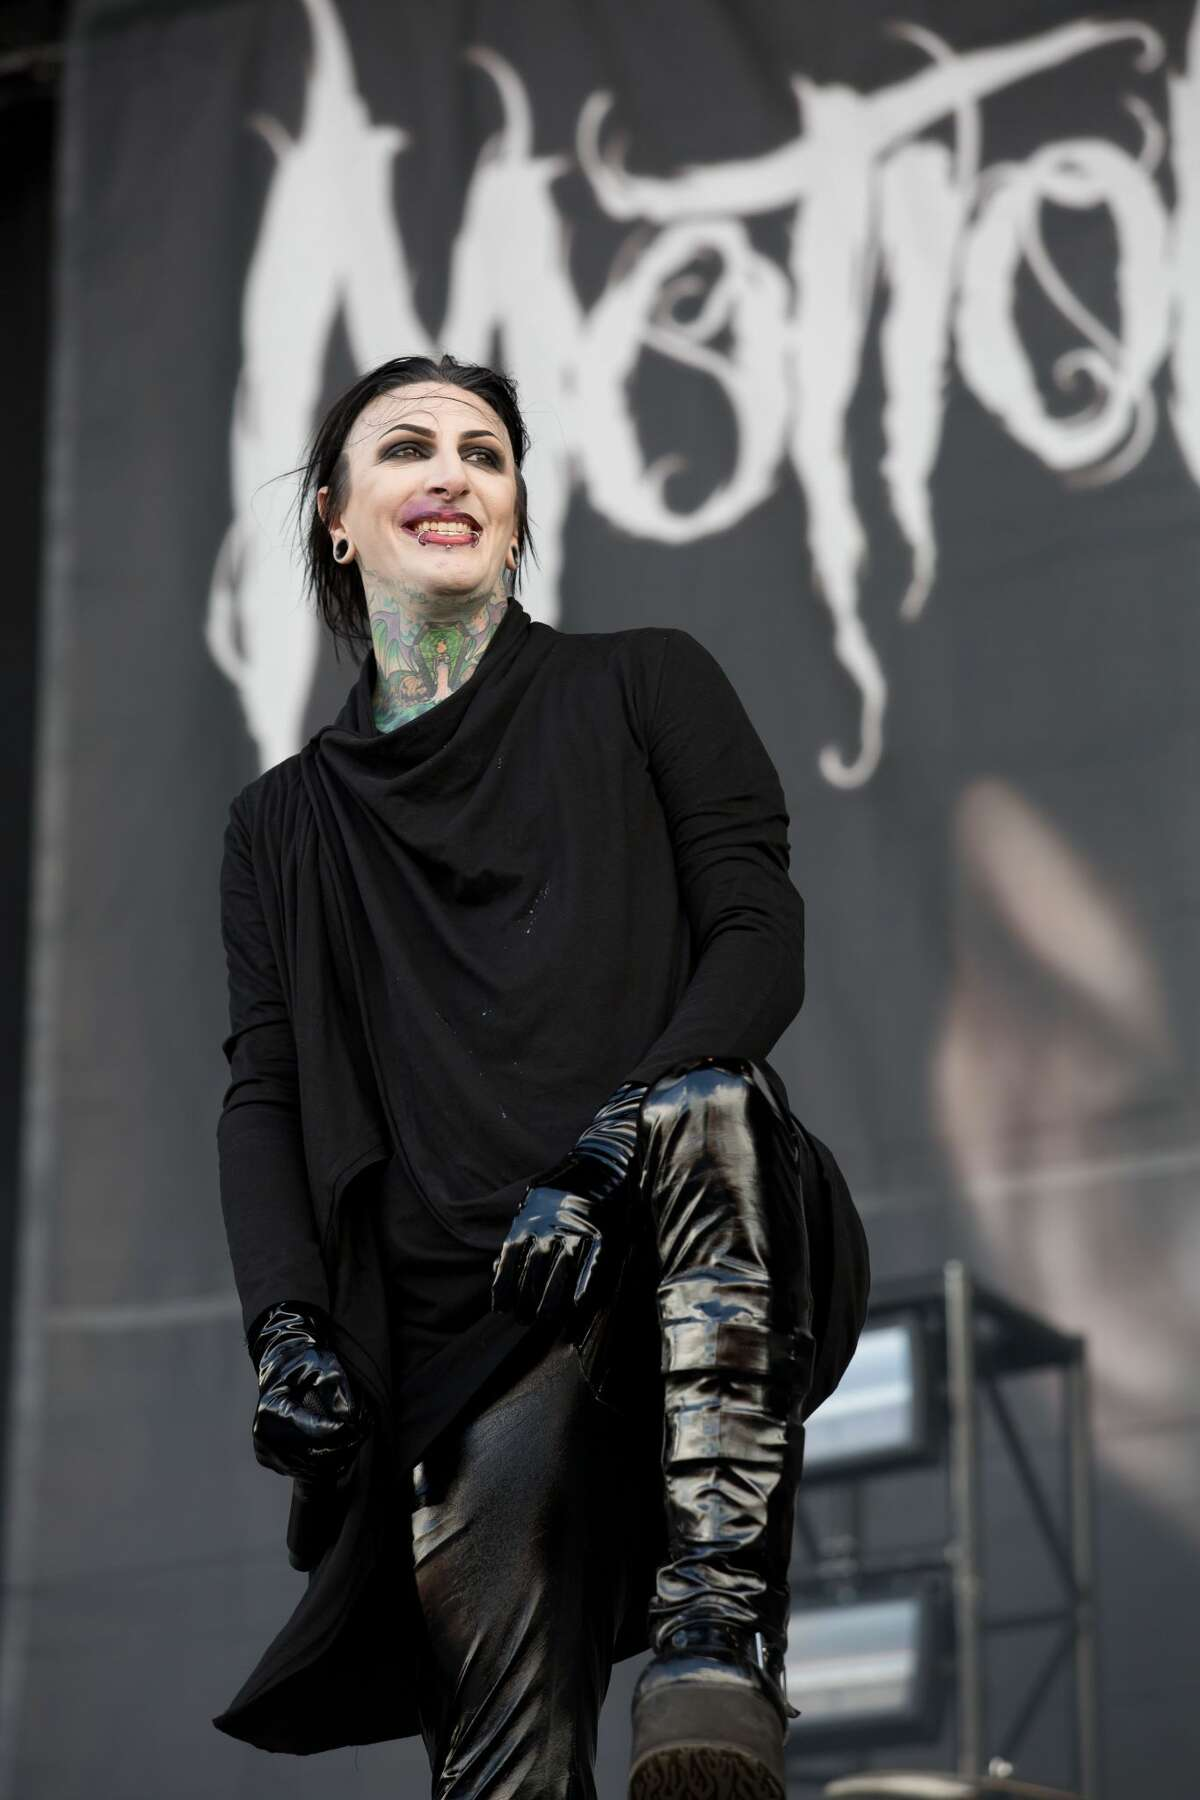 Motionless in White: The band will be performing at  White Oak Music Hall on Wednesday, Oct. 25 along with The Amity Afflicition and Miss May I.  More Details: www.whiteoakmusichall.com